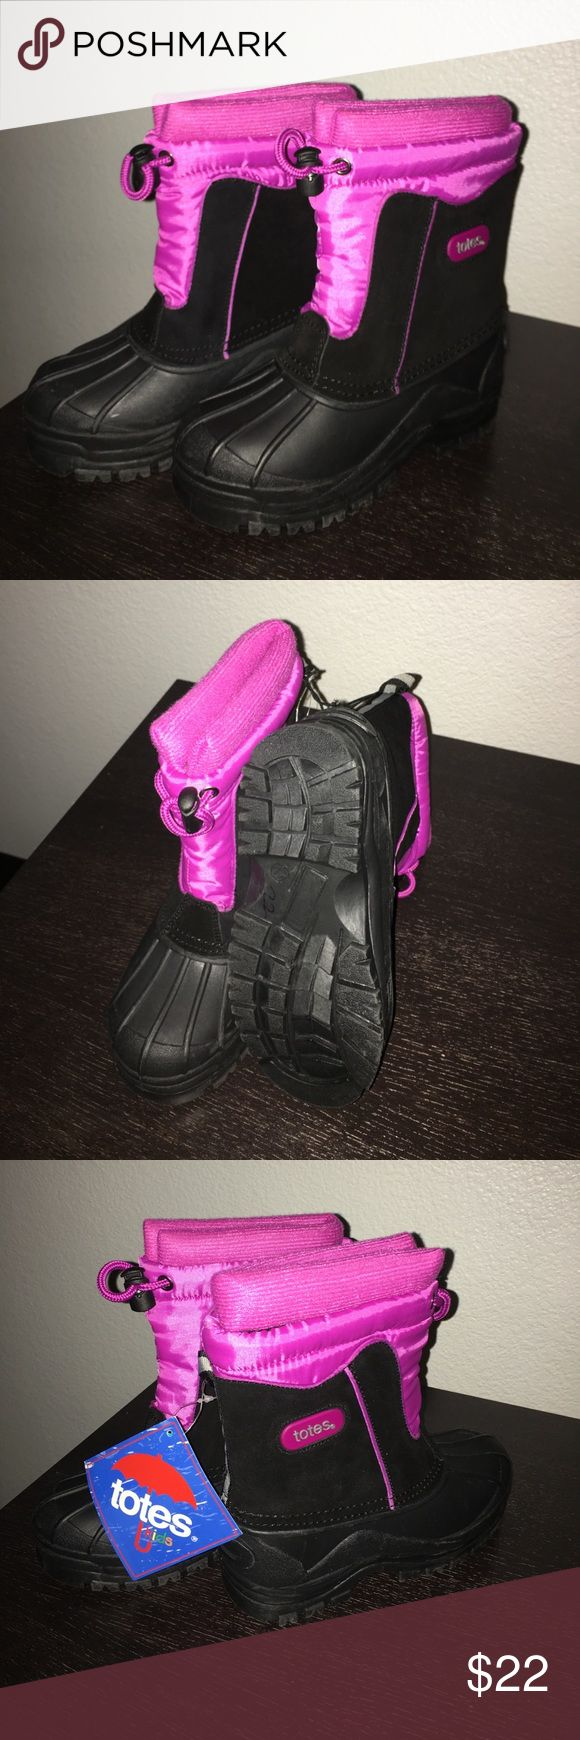 New kids boots for sale New kids boots for sals with tags. Please let me know if you have an offer :) Totes Shoes Rain & Snow Boots